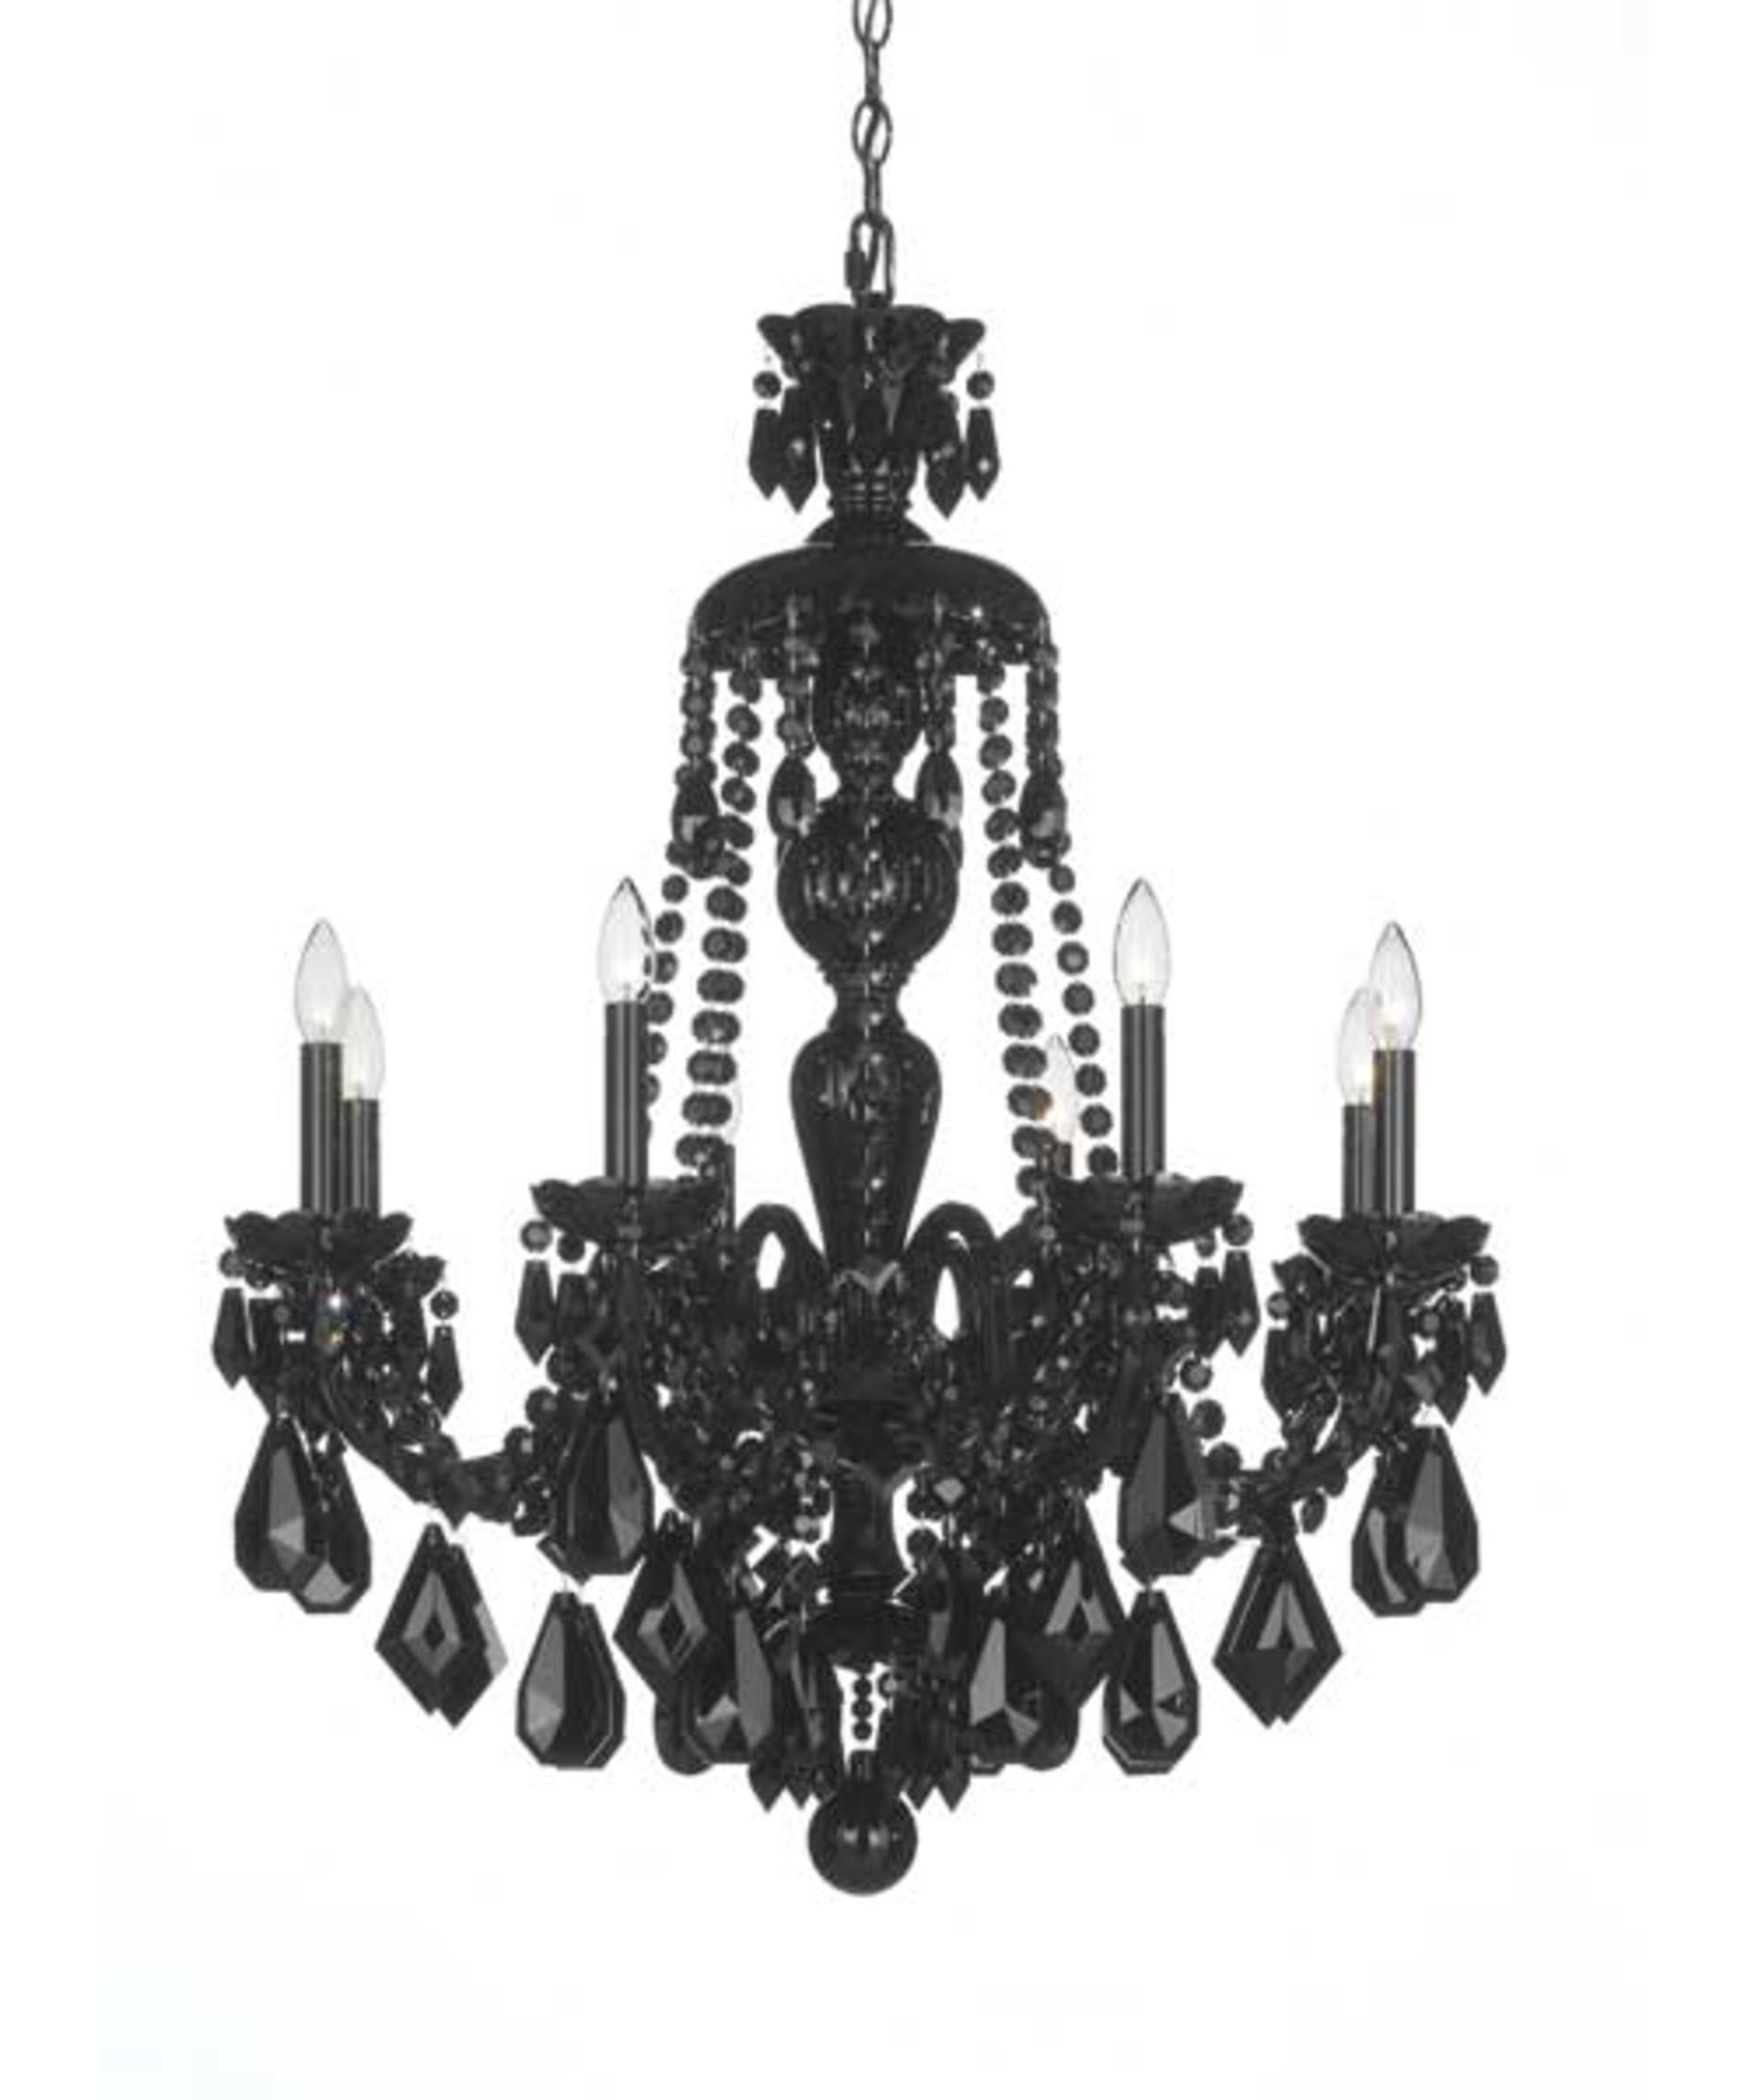 Schonbek 5737bk Hamilton Black 28 Inch Wide 8 Light Chandelier Throughout Widely Used Traditional Crystal Chandeliers (View 12 of 20)